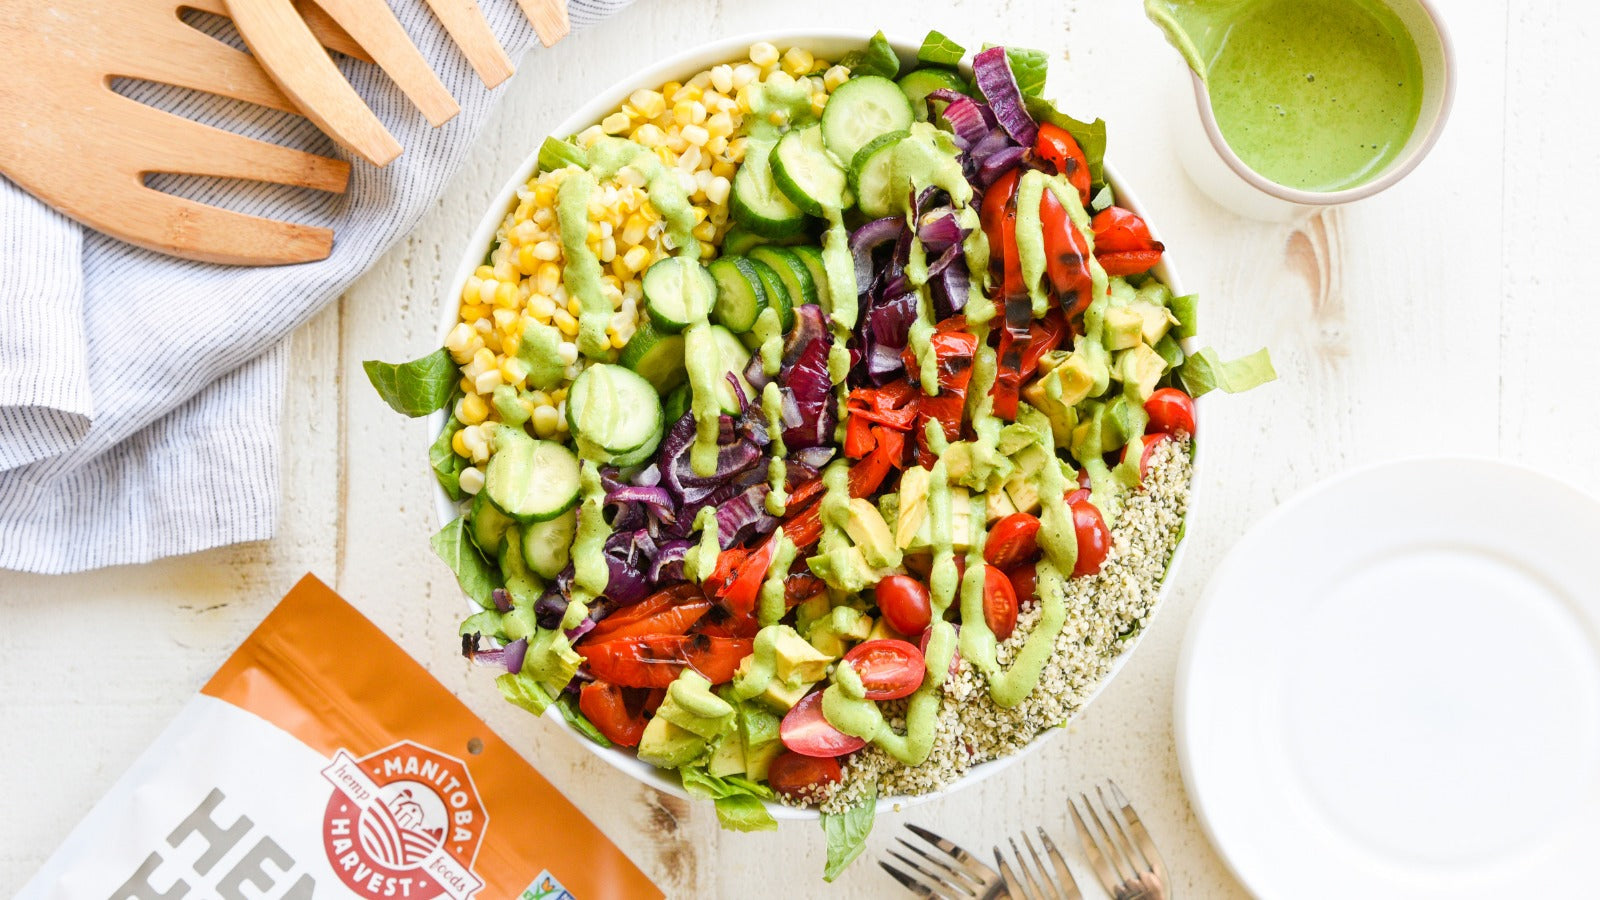 Grilled Vegetable Salad  with Vegan Hemp Pesto Dressing